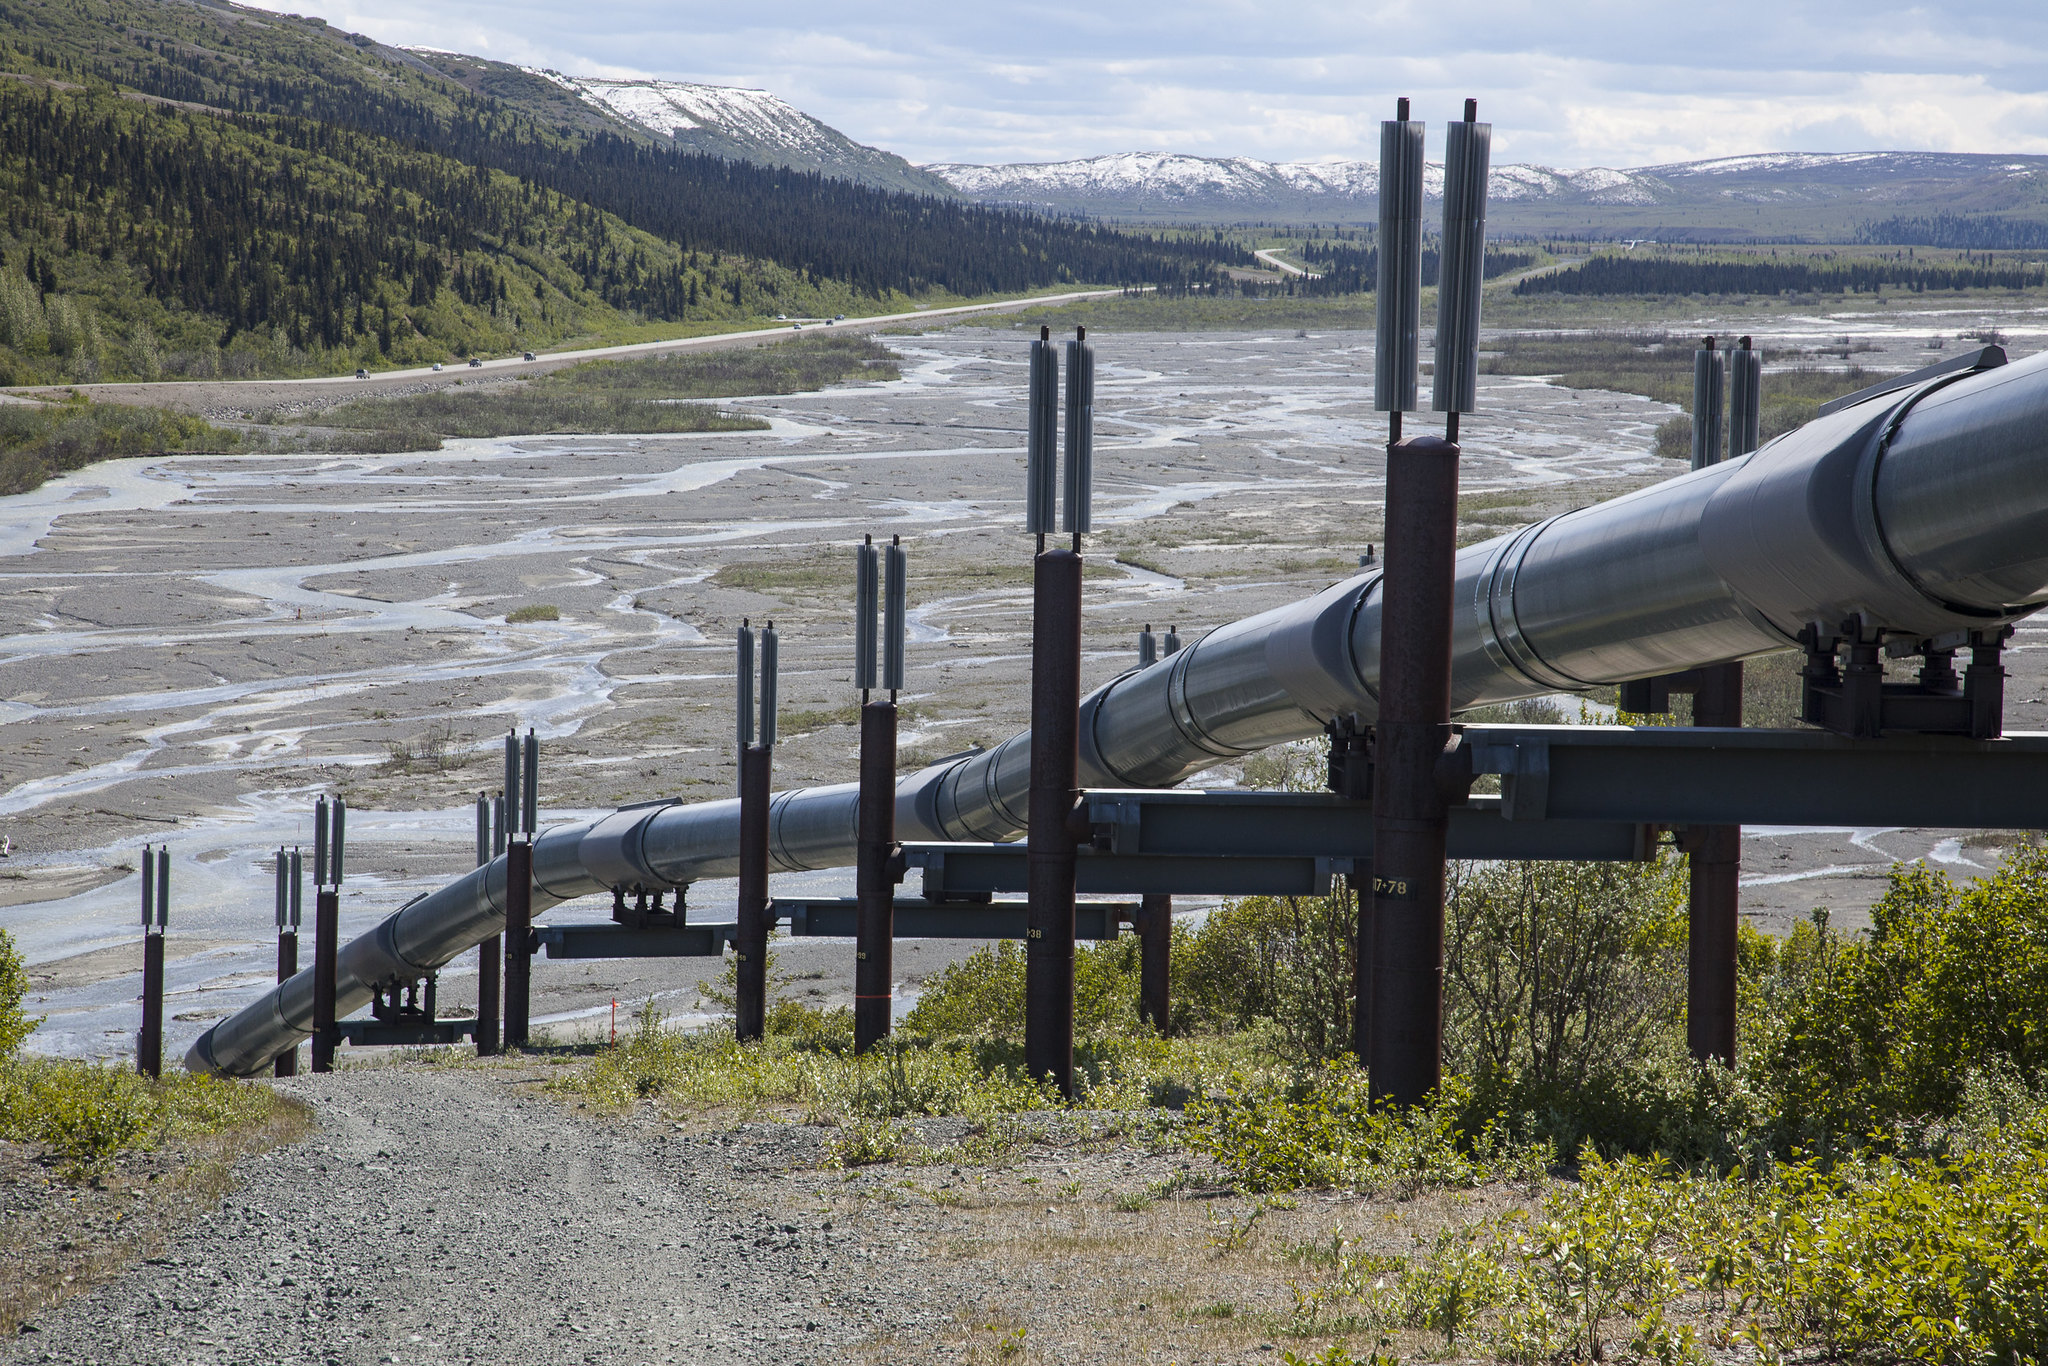 New Lawsuit Challenges 'Fast-Track' Permits Used for Oil and Gas Pipelines Nationwide